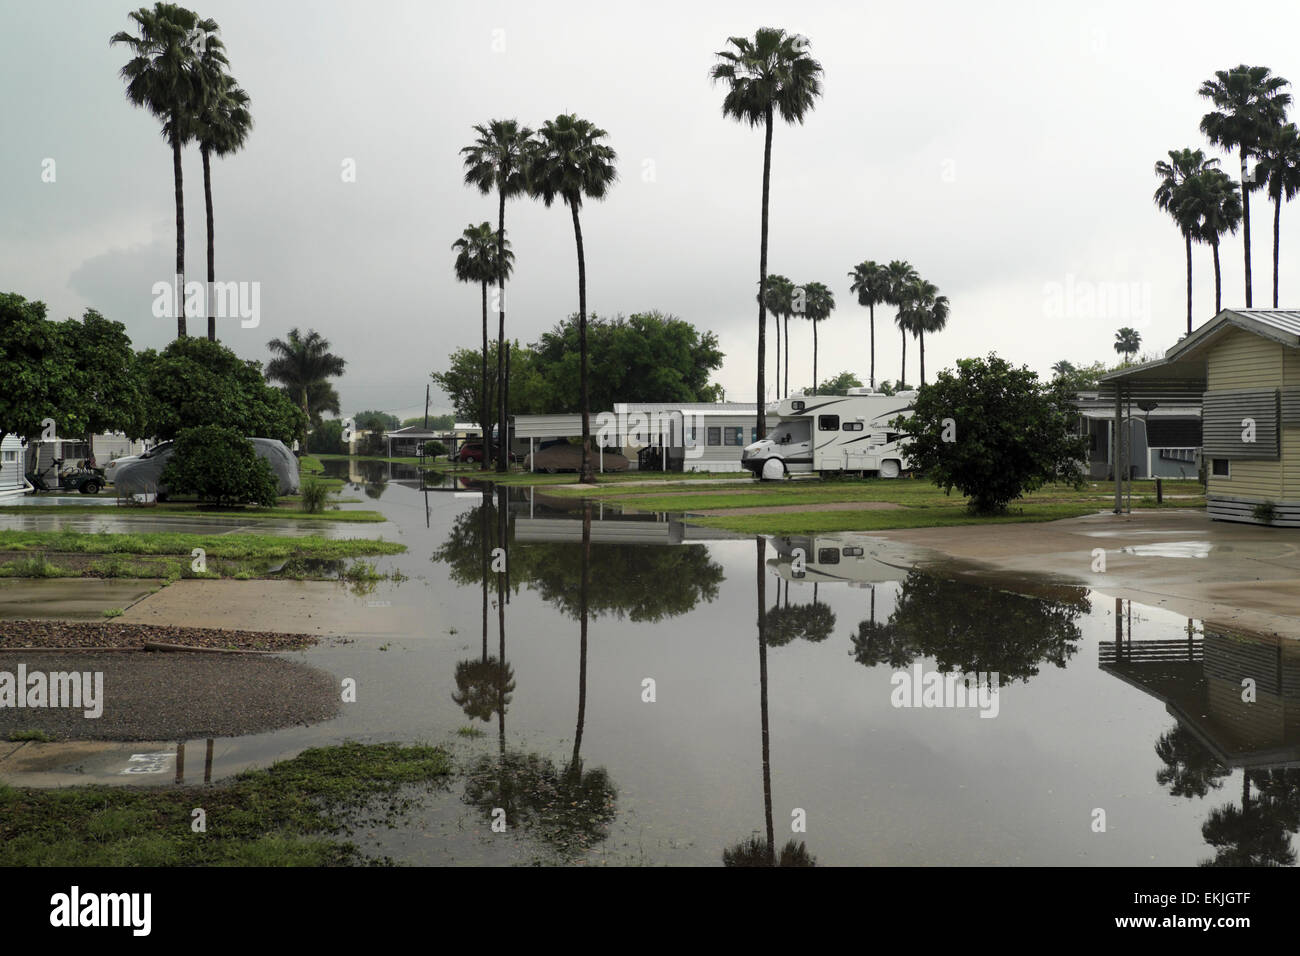 April Flooding In A Mobile Home RV Park Mission Texas USA